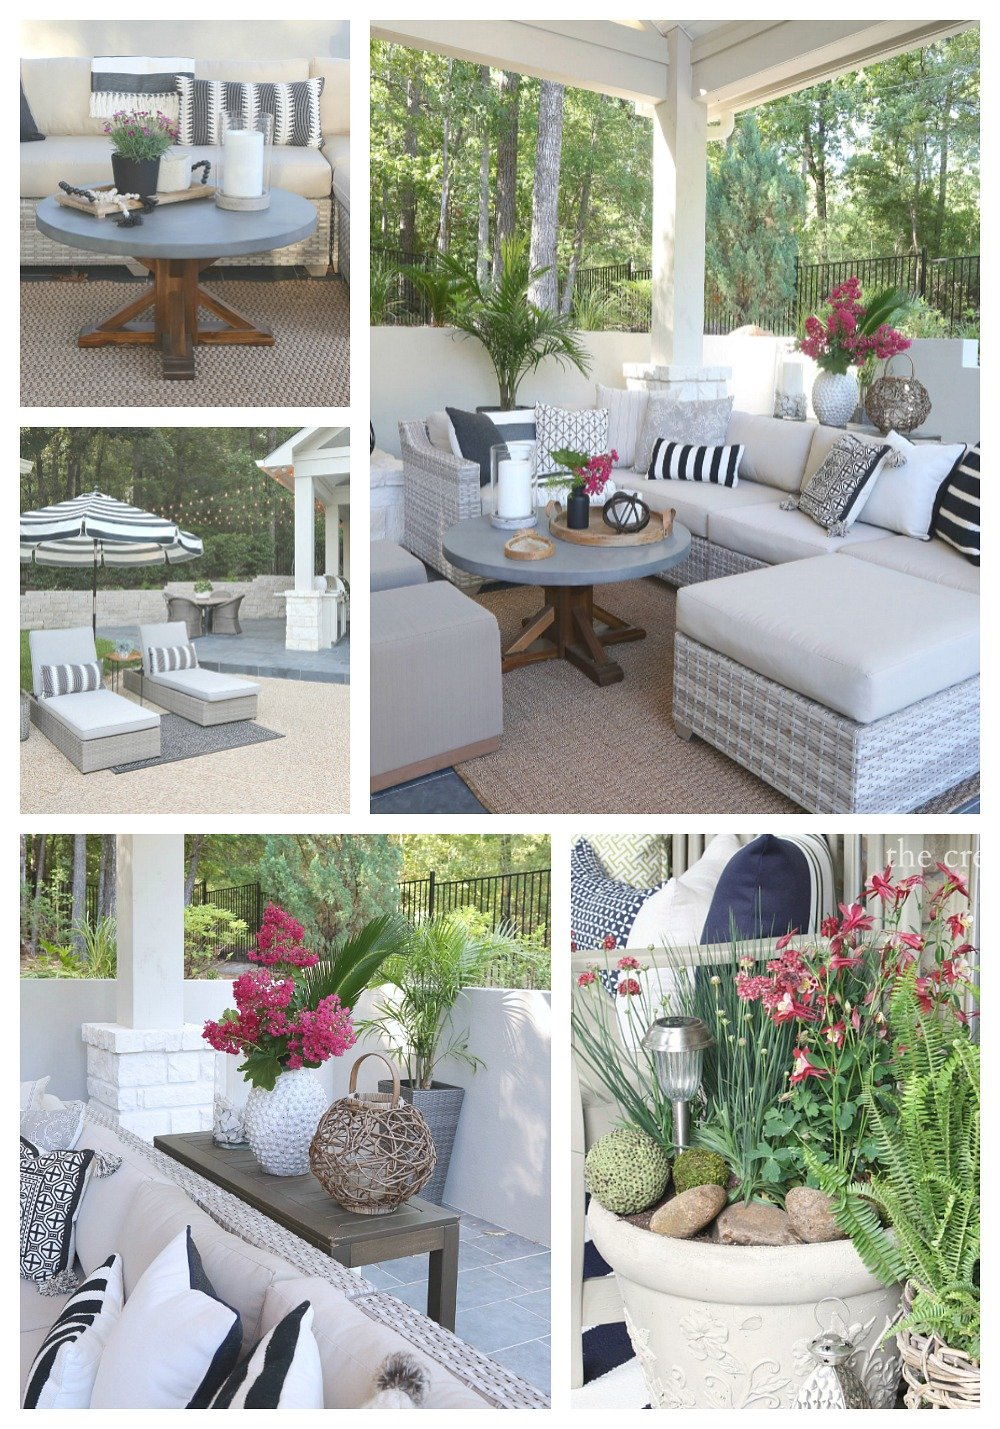 5 Minute Outdoor Patio Decorating Tips and Ideas